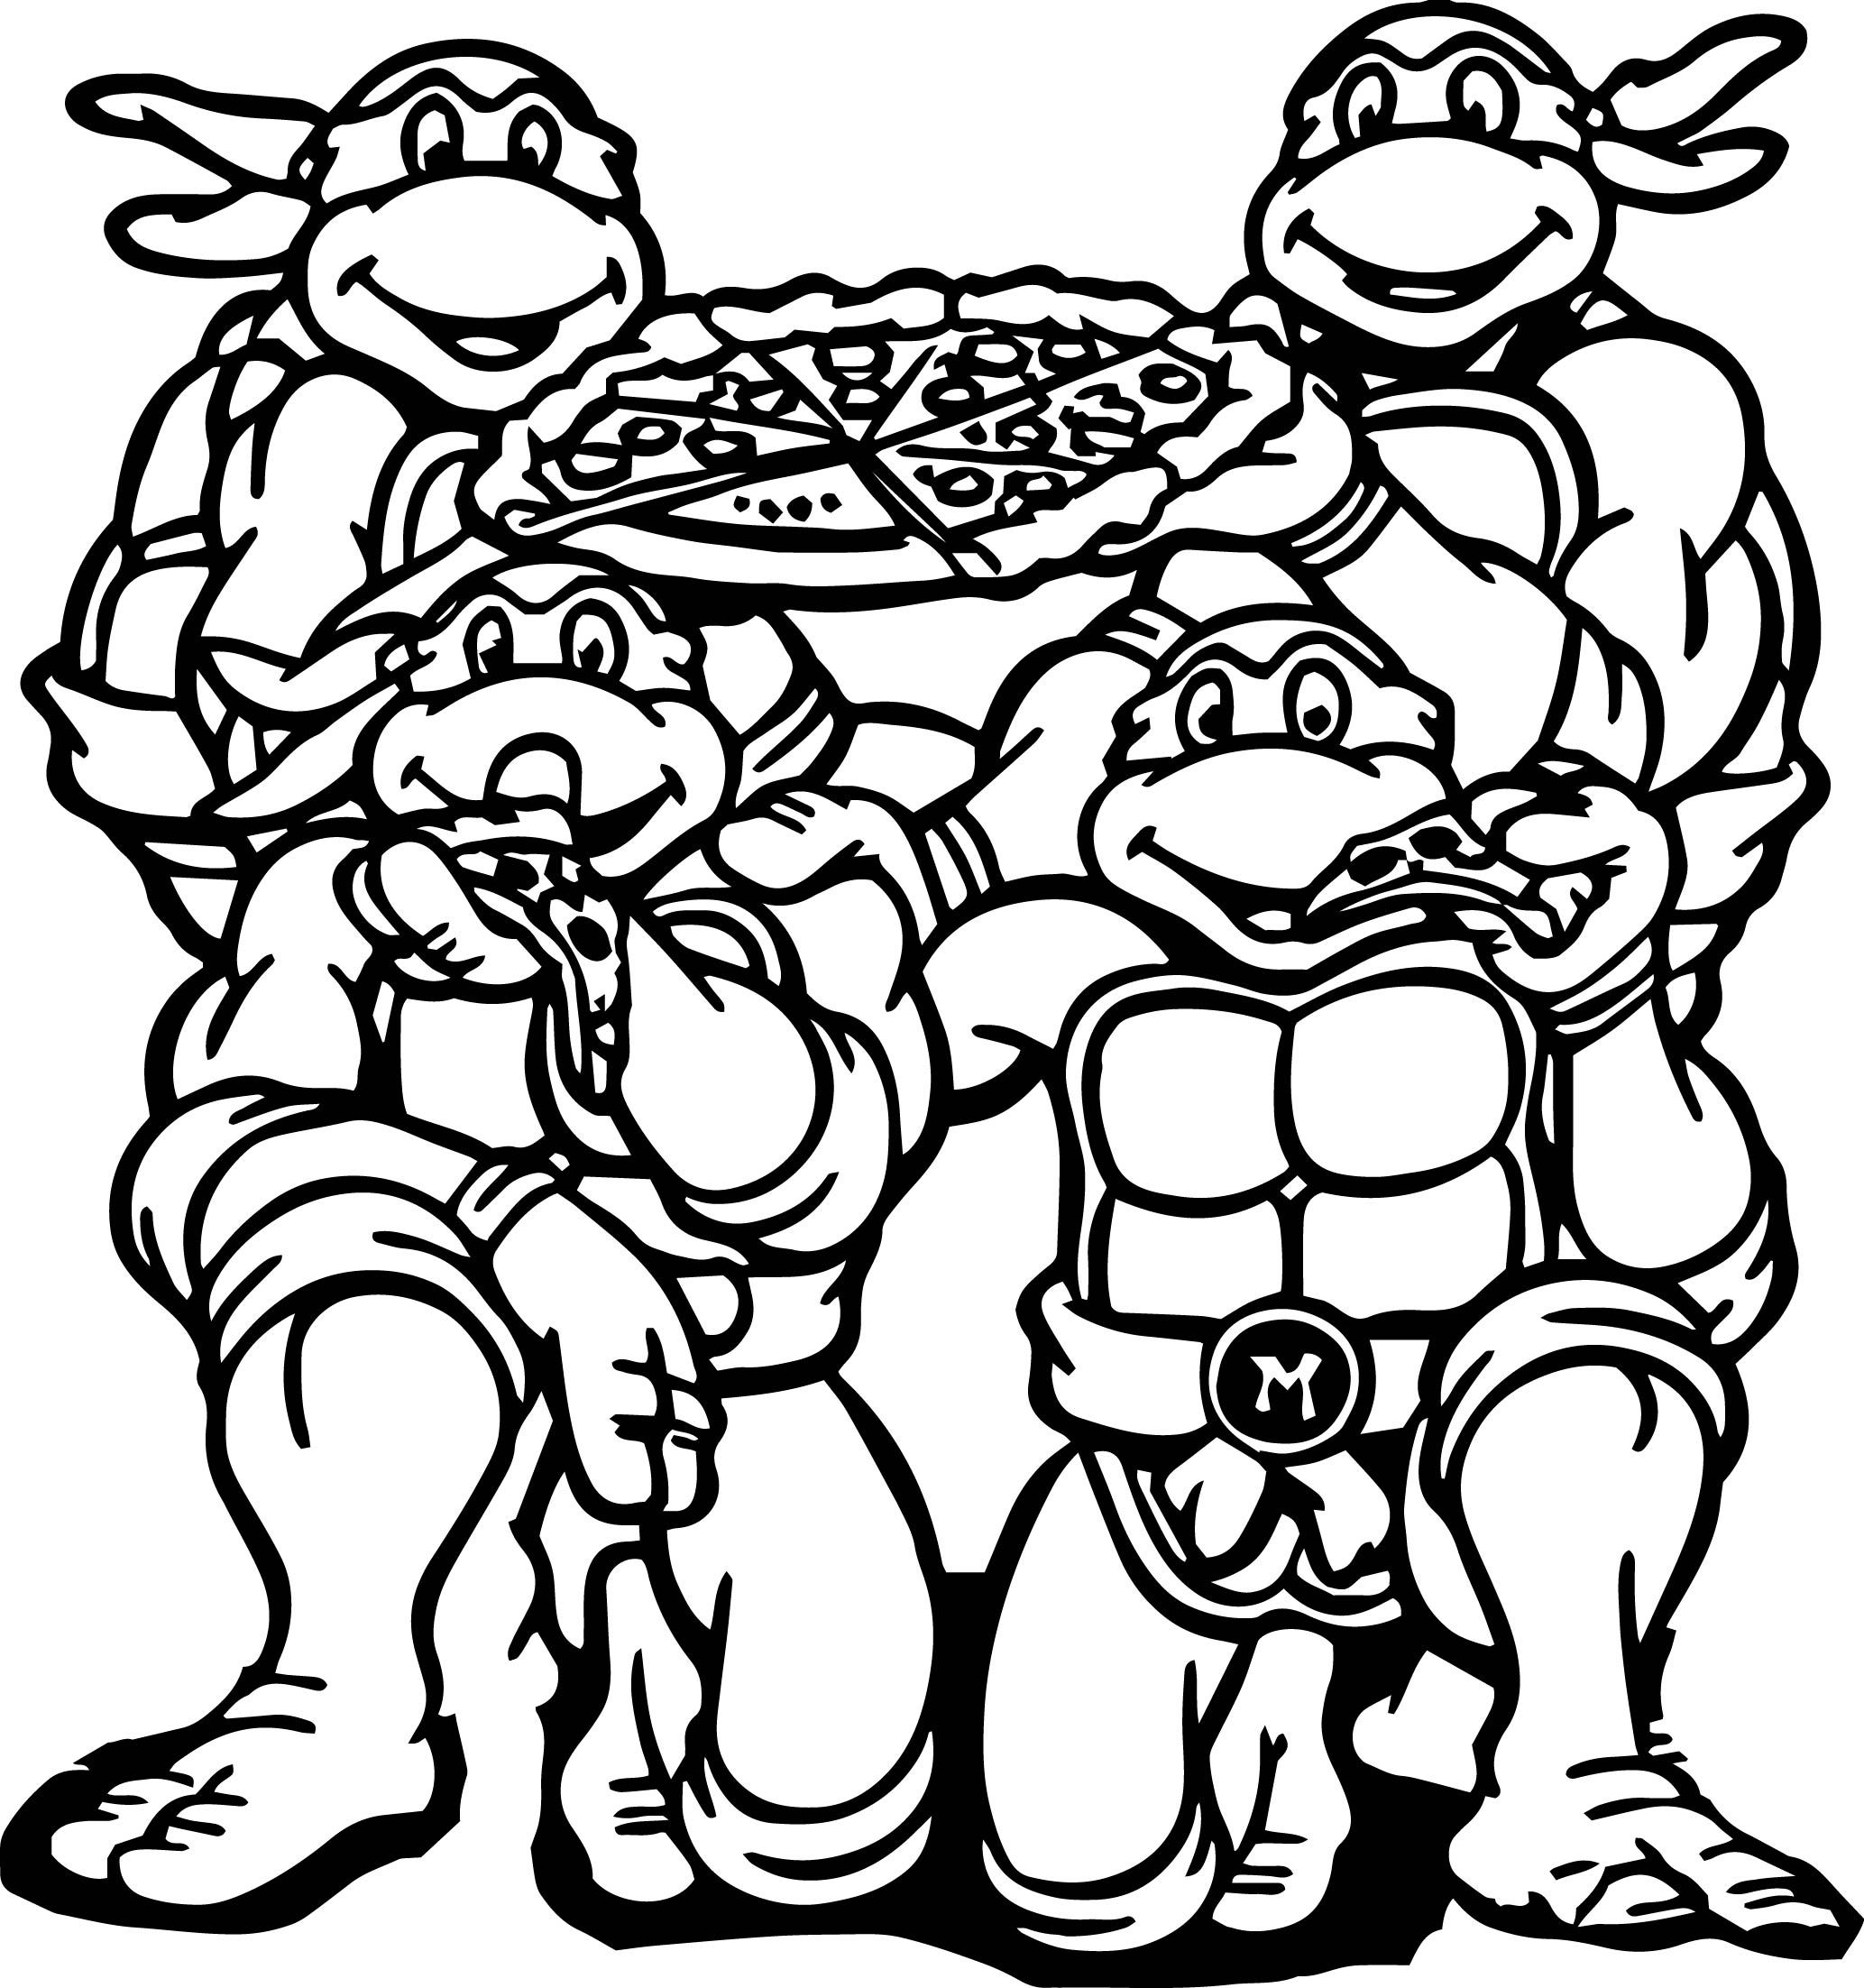 2067x2204 Pizza Coloring Pages